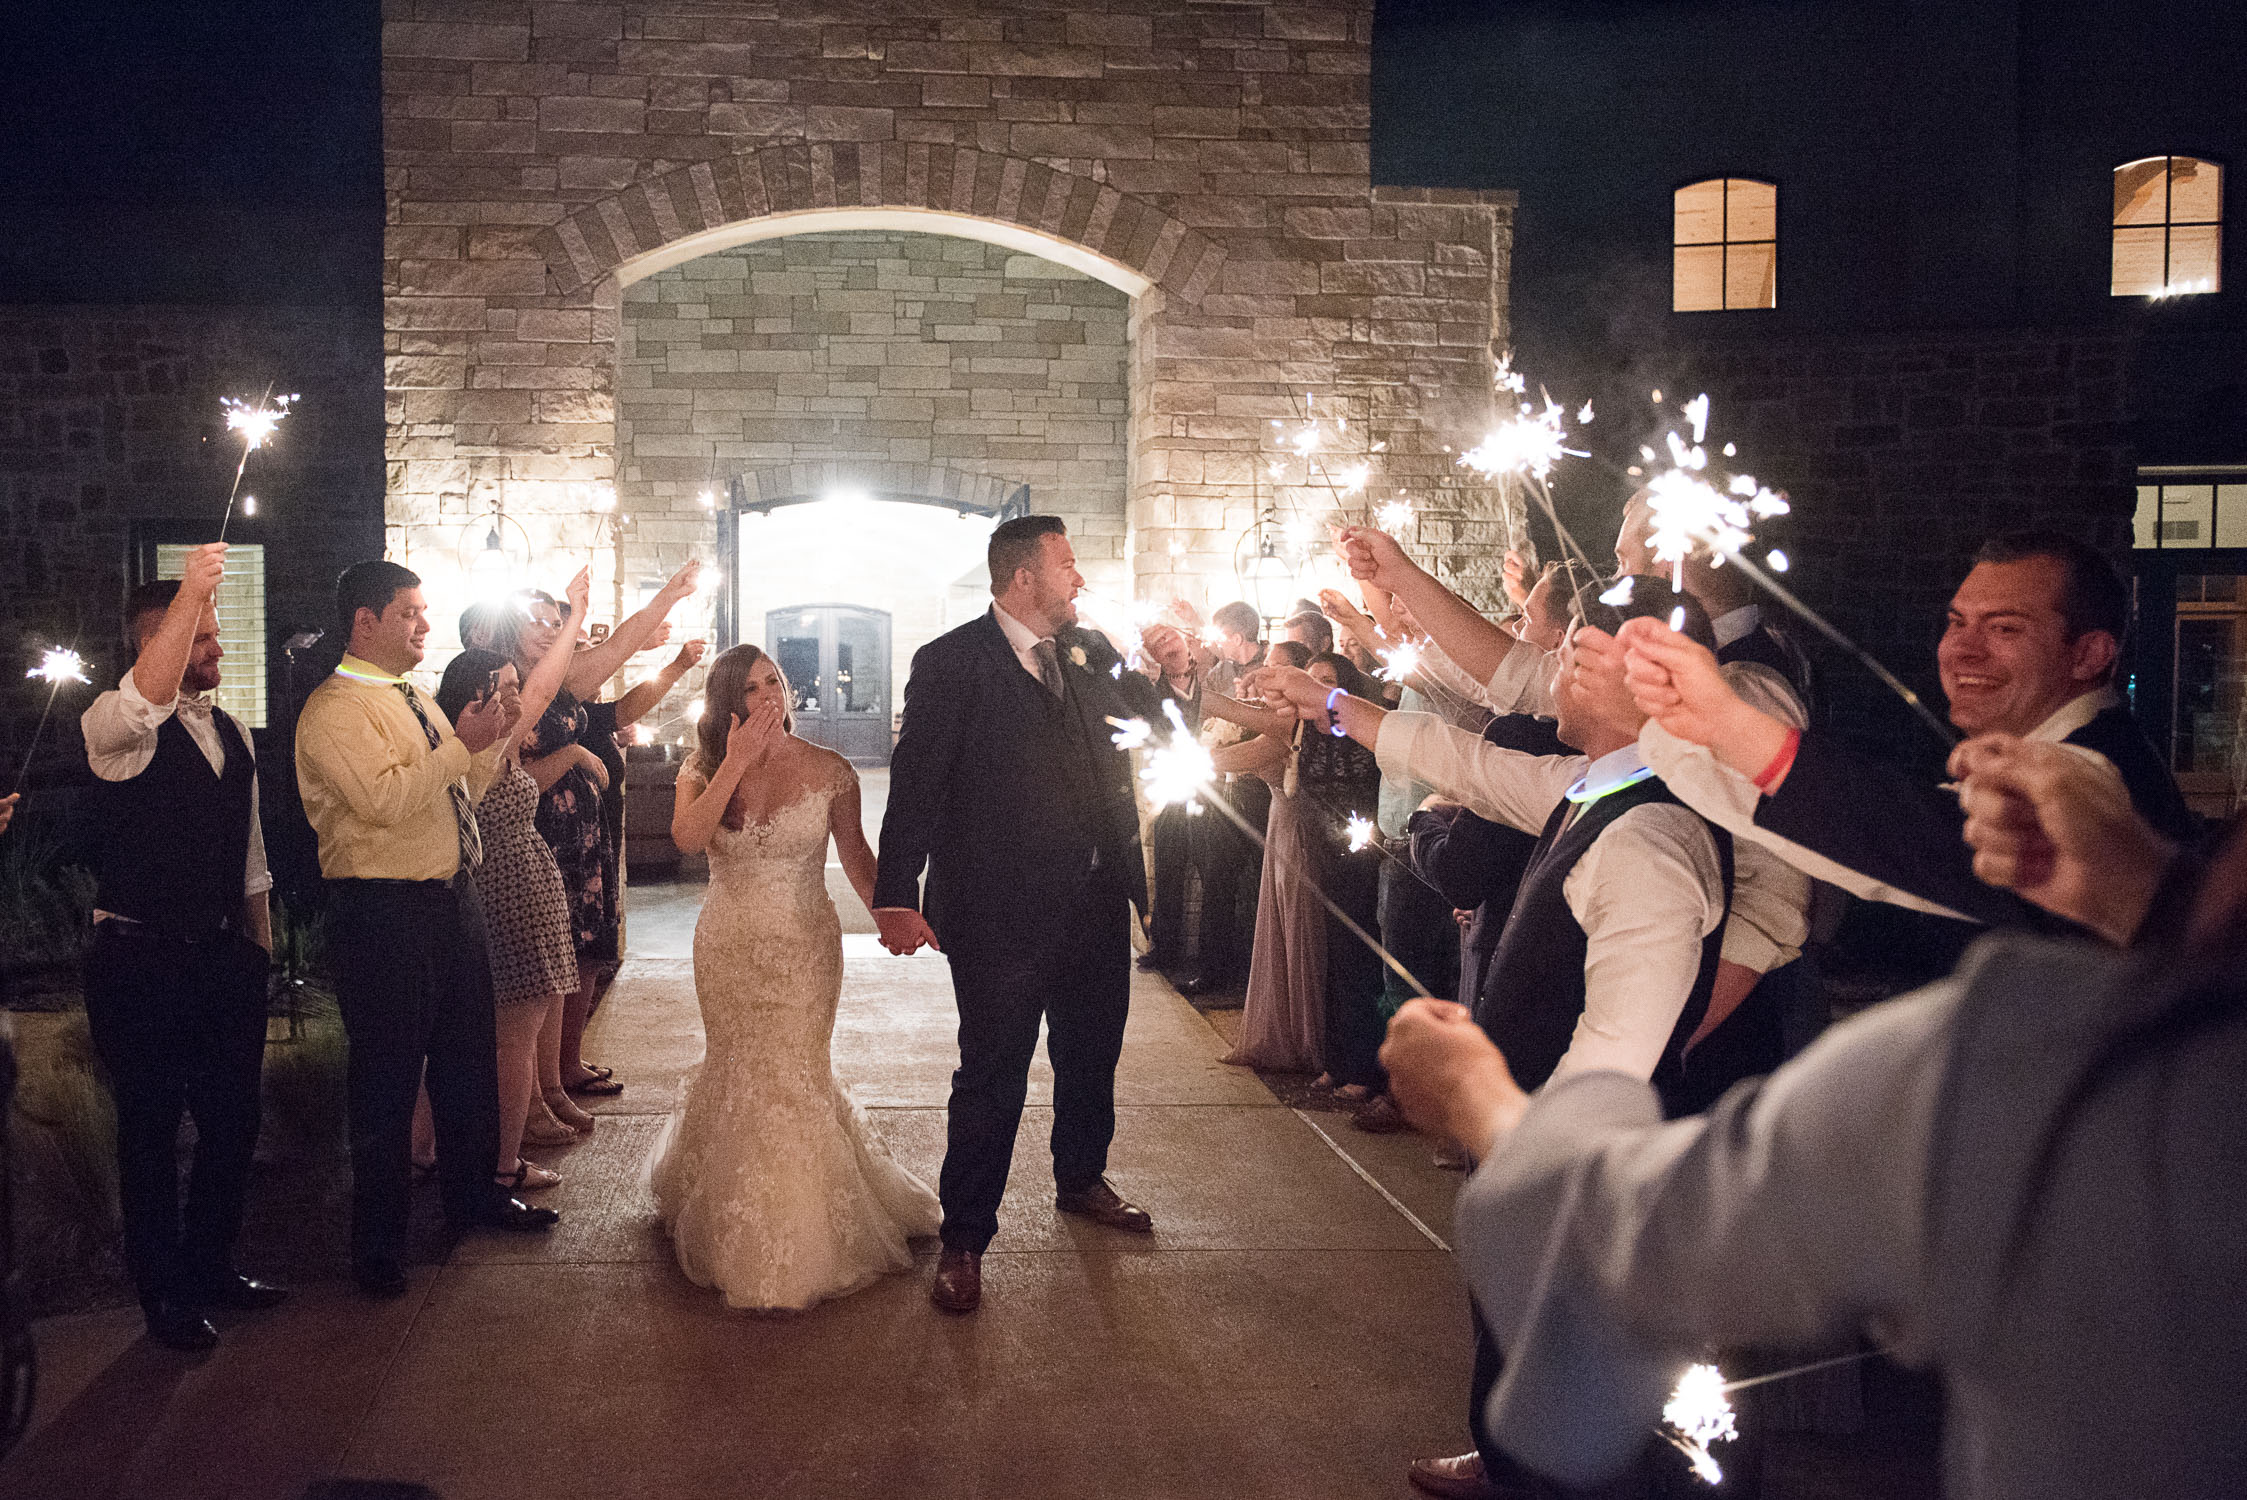 Hinton Wedding at Canyonwood Ridge Dripping Springs Texas Wedding Photography-202.jpg